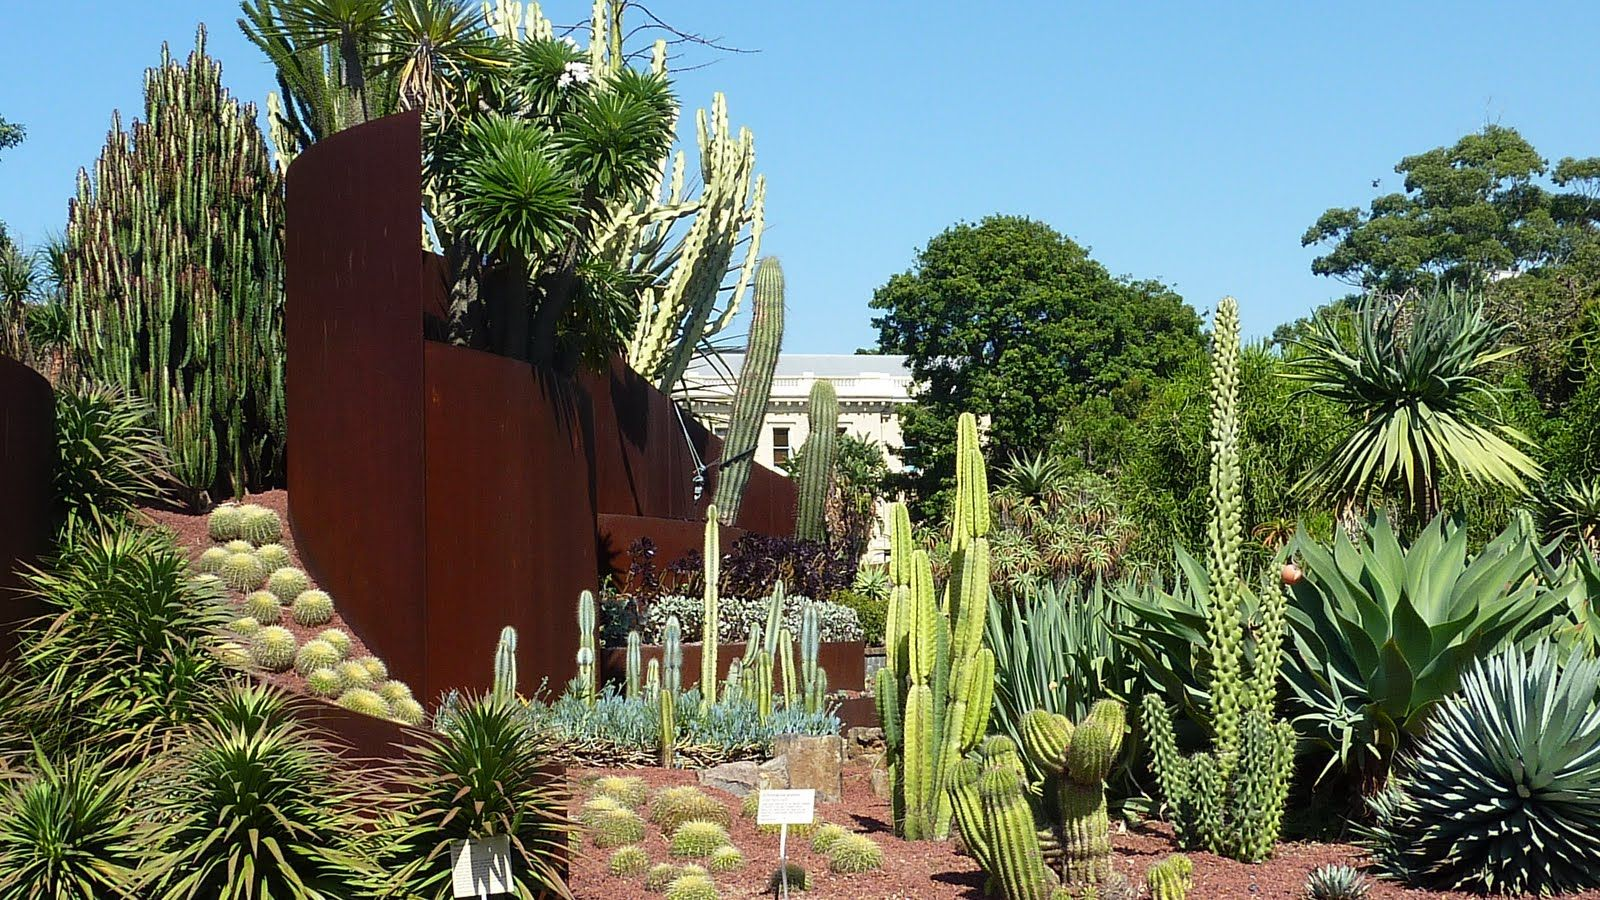 Succulent gardens google search landscape architecture for Jamie durie garden designs